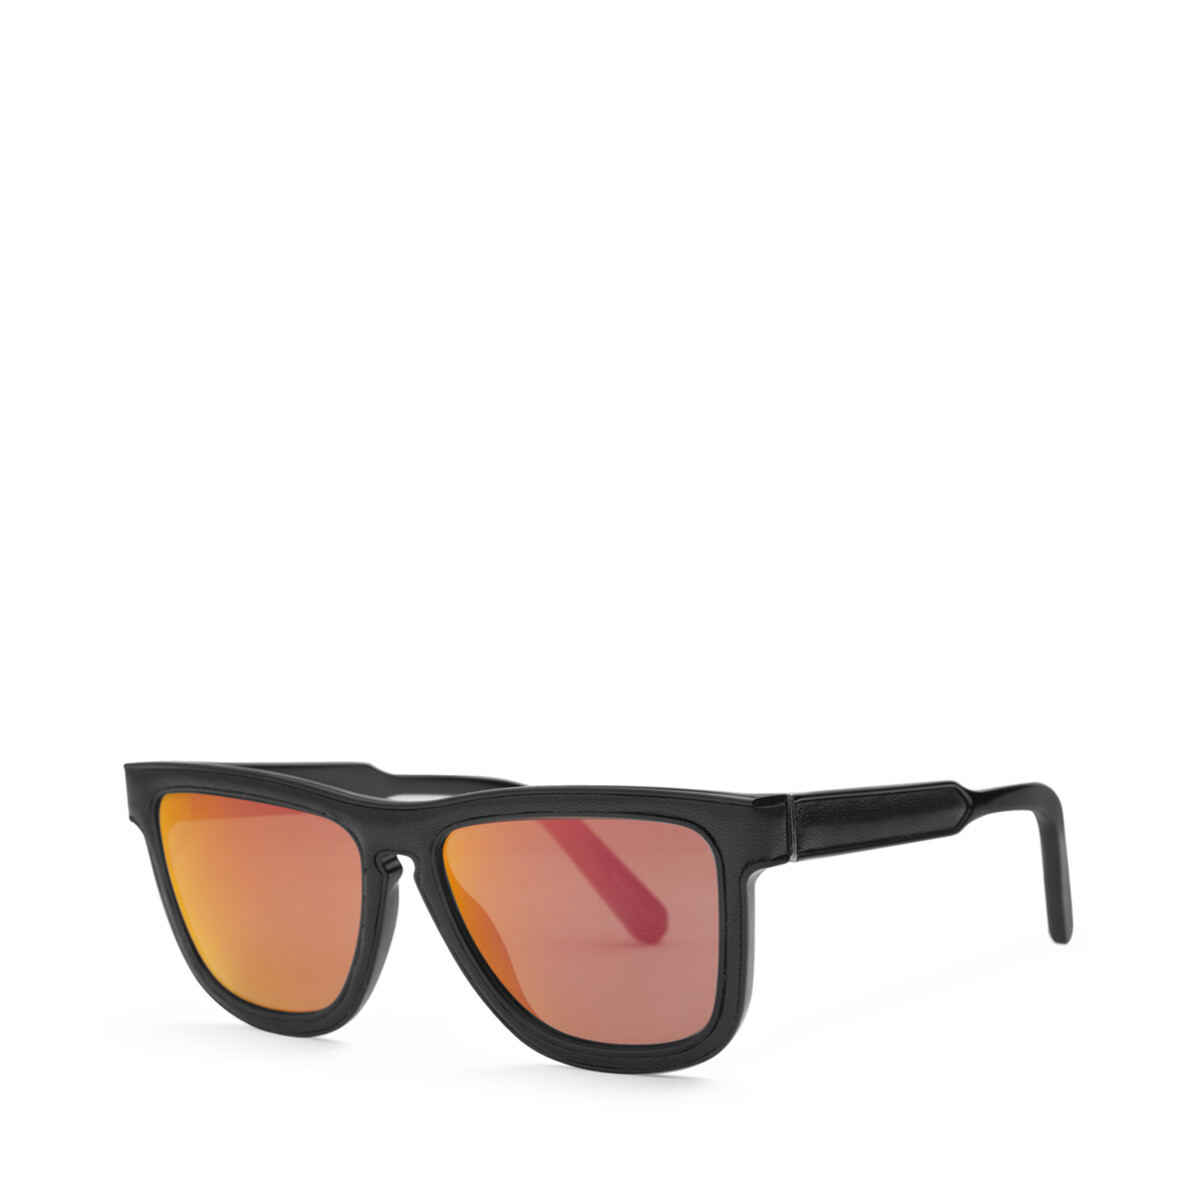 LOEWE Square Padded Sunglasses Black/Mirror Red front